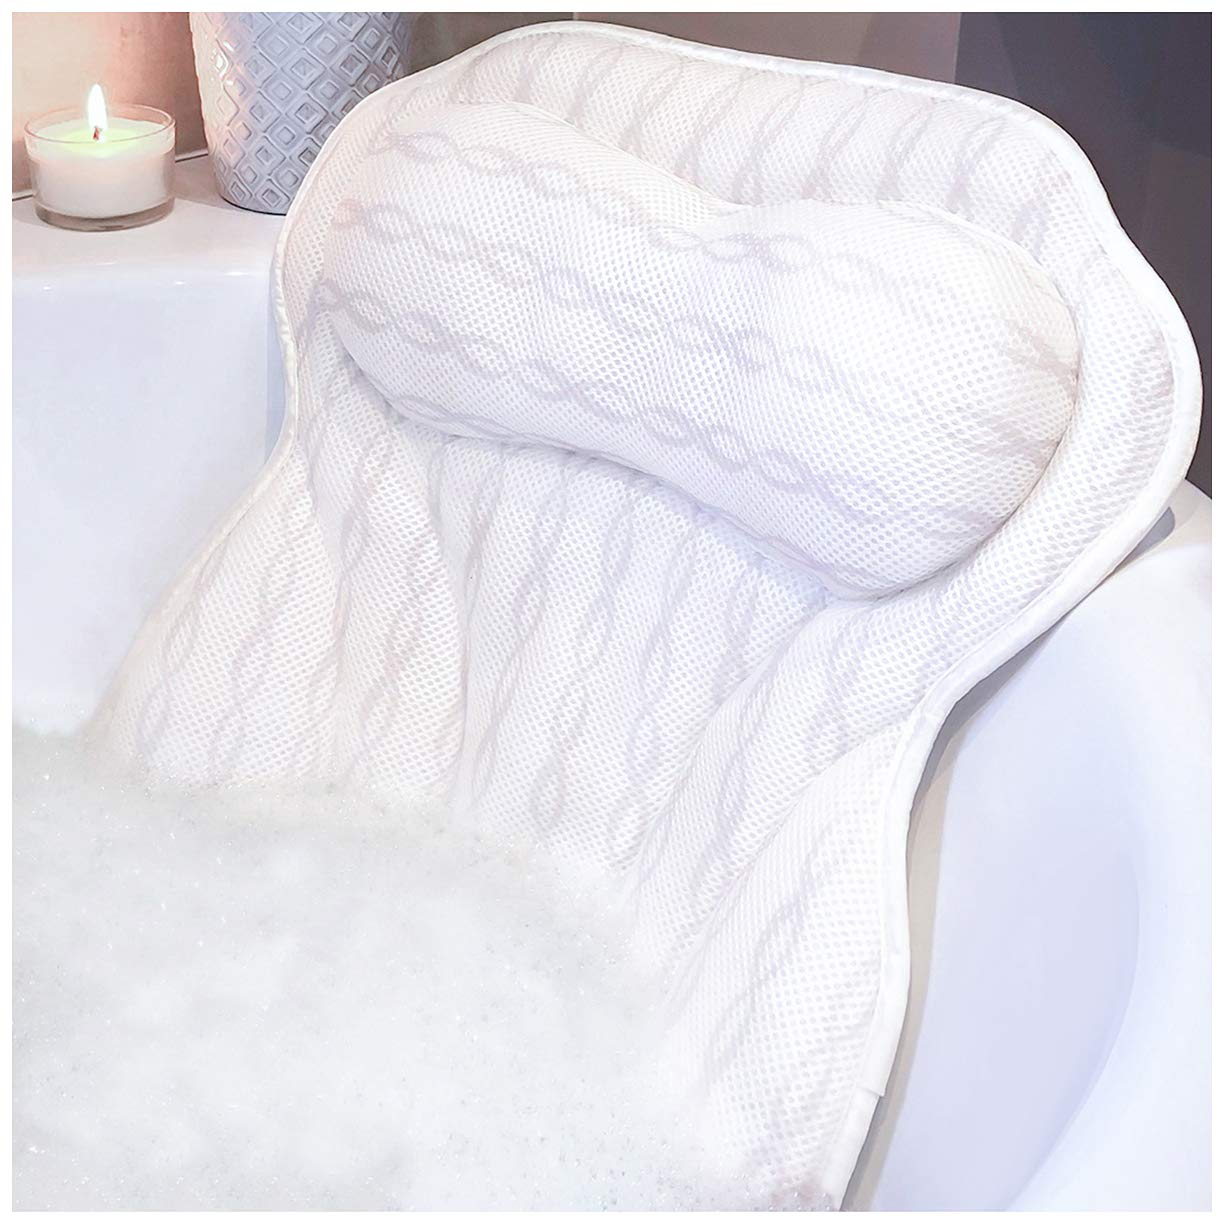 Luxury Bath Pillow Bathtub Pillow - Ergonomic Neck Support Like No Other - 3D Air Mesh Technology - Non Slip, Machine Washable & Quick Dry Bath Pillows for Tub by KANDOONA